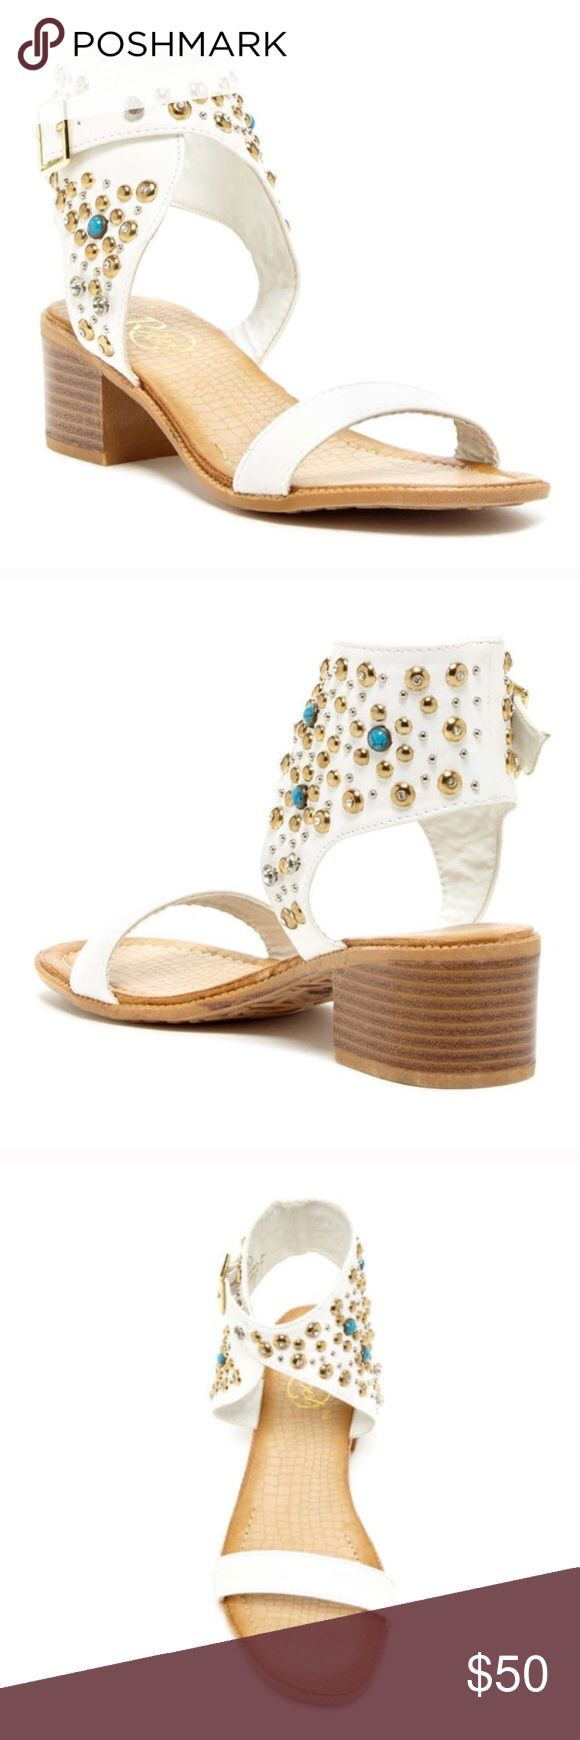 Nordstrom White Boho Embellished Sandals NOT JEFFREY CAMPBELL, LISTED FOR EXPOSURE! Just like the Jeffrey Campbell Lakota or Seneca or the Isabel Marant Carol and Jaeryn! They've never been worn, so they're brand new without the box. They're white faux leather with gold and blue beads and perfect with any outfit. Purchased them from Nordstrom last summer but never got the chance the wear them, THEN they went on sale! Last couple photos are the sandals in black! Jeffrey Campbell Shoes Sandals